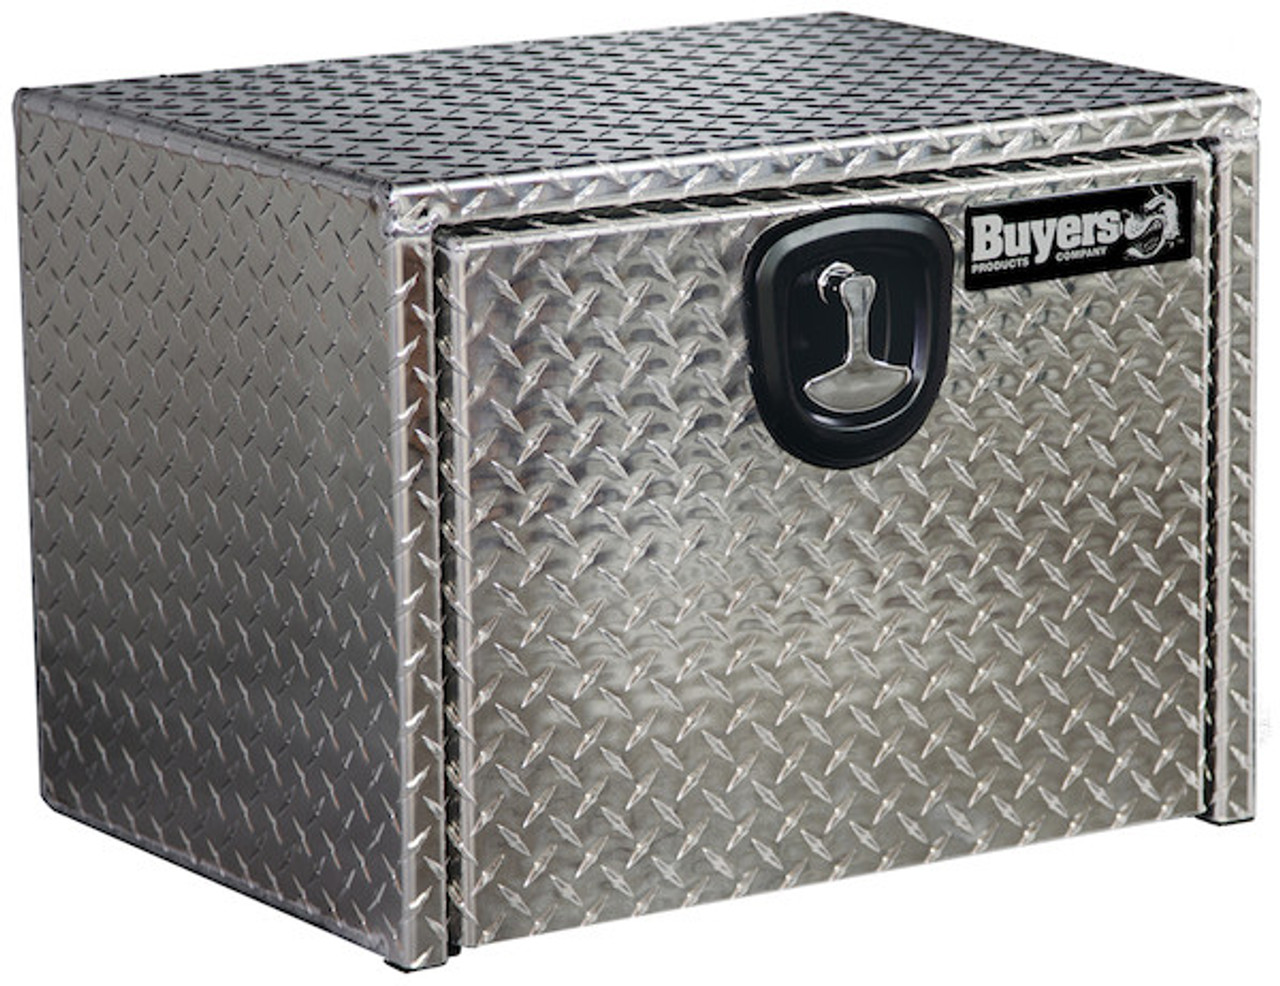 "1705133 BUYERS PRODUCTS DIAMOND TREAD ALUMINUM UNDERBODY TRUCK TOOLBOX 24""HX24""DX30""W"